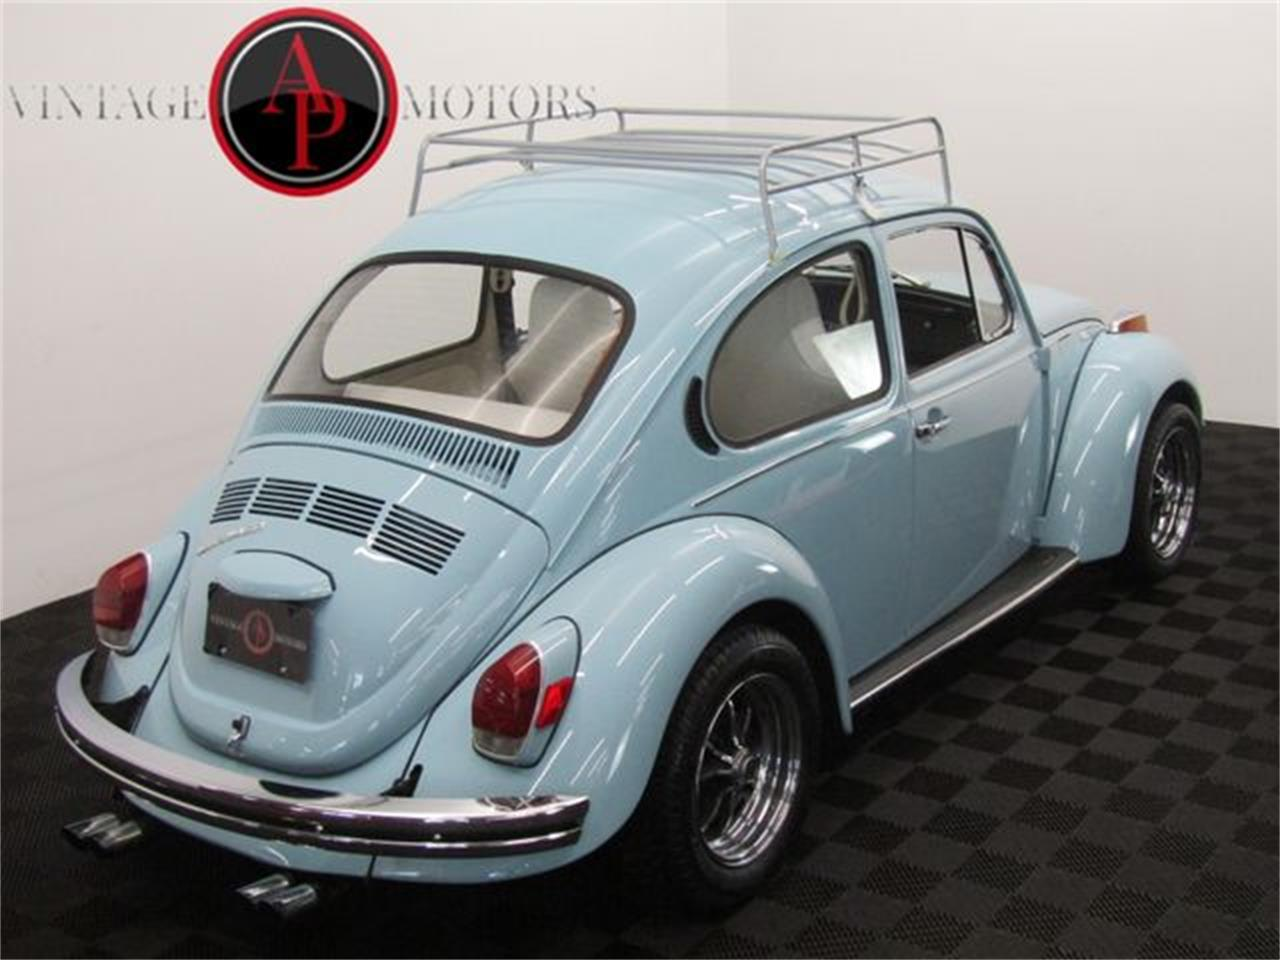 1972 Volkswagen Beetle for sale in Statesville, NC – photo 73